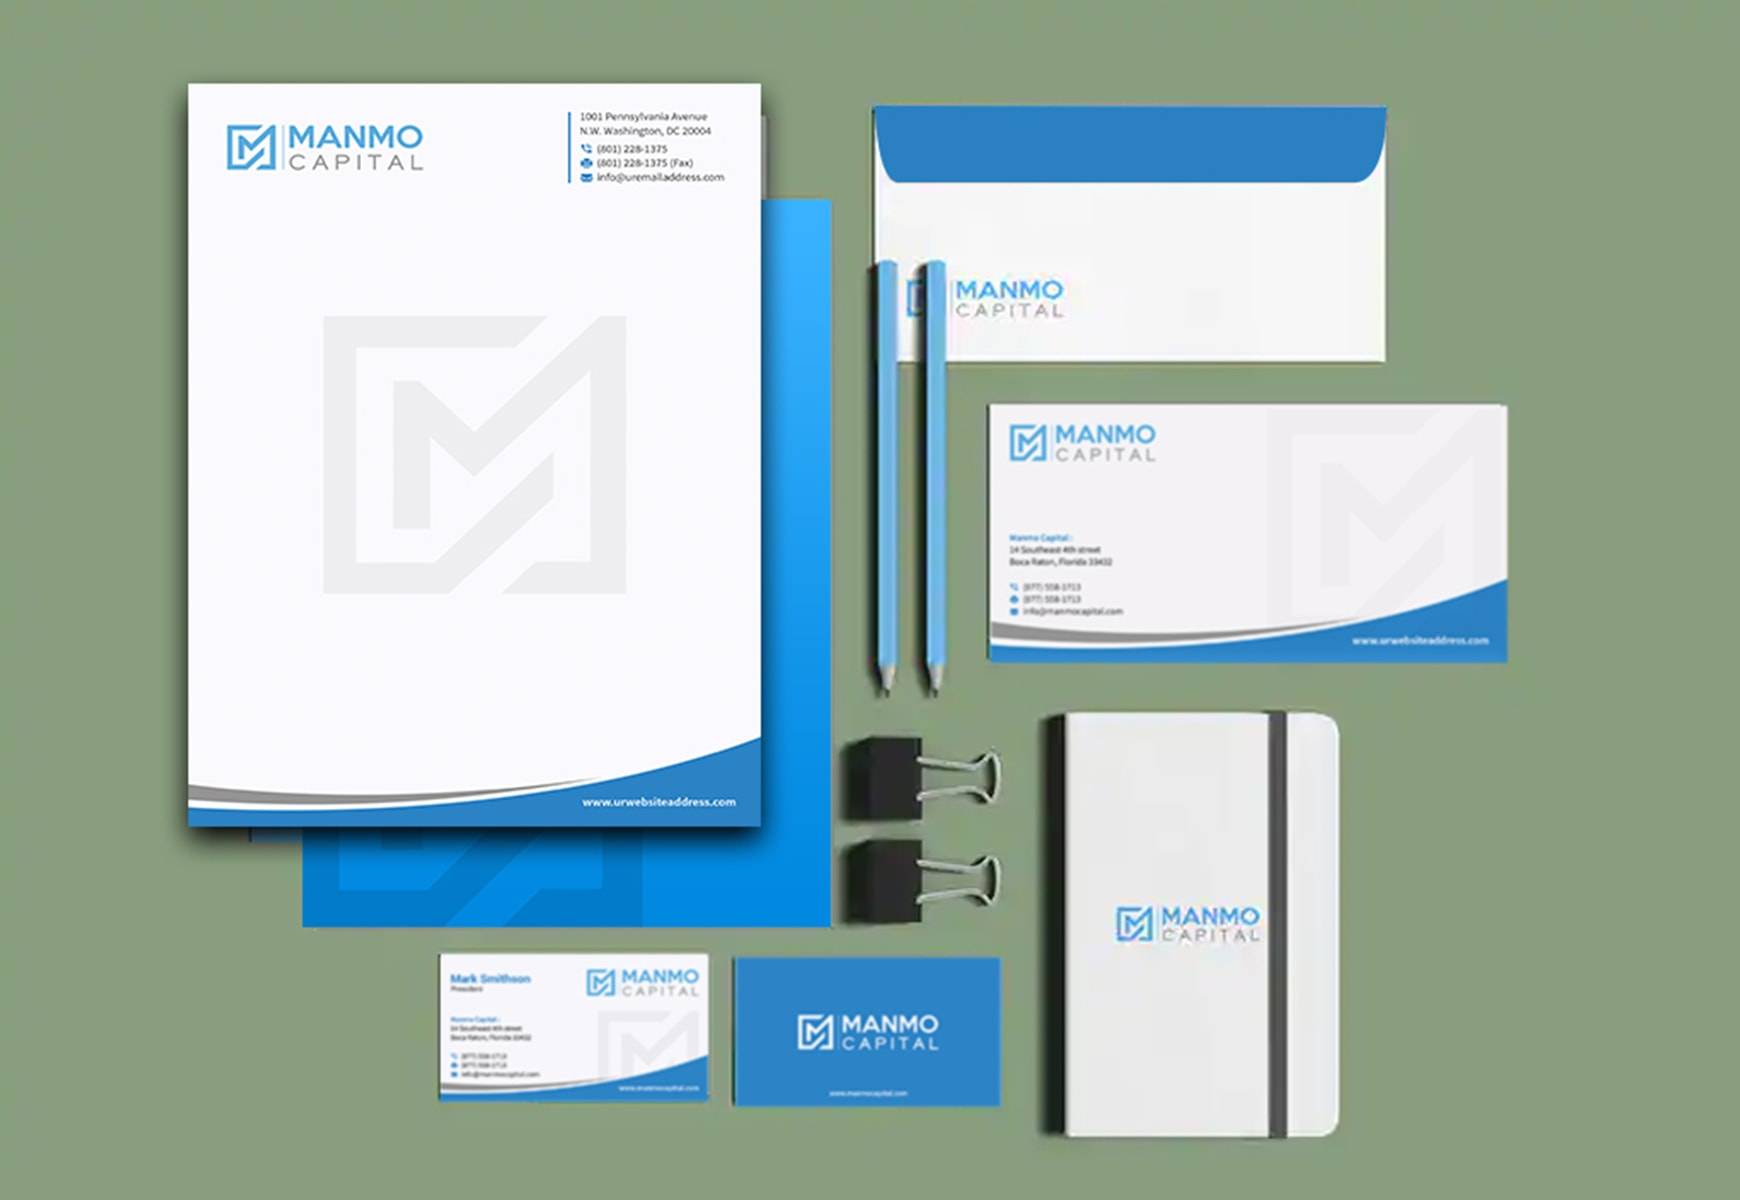 I will design business card, letterhead, envelope and stationary